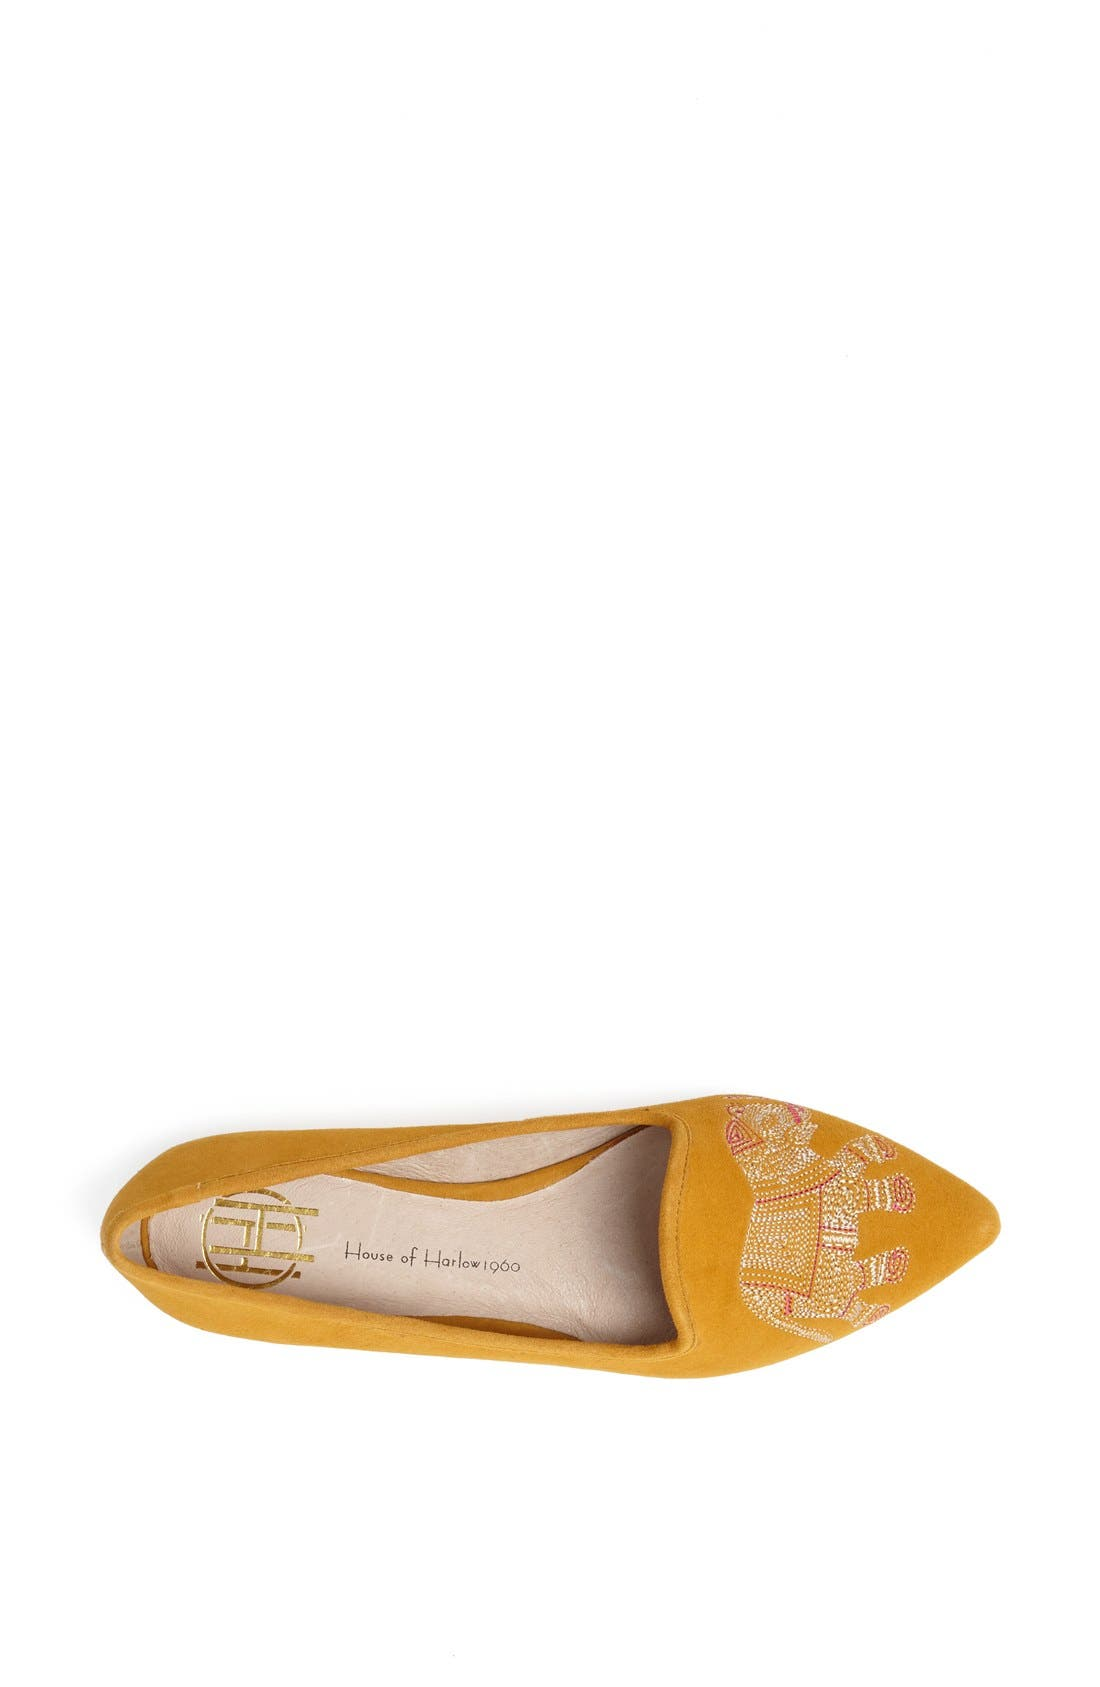 Alternate Image 3  - House of Harlow 1960 'Samy' Embroidered Smoking Slipper Flat